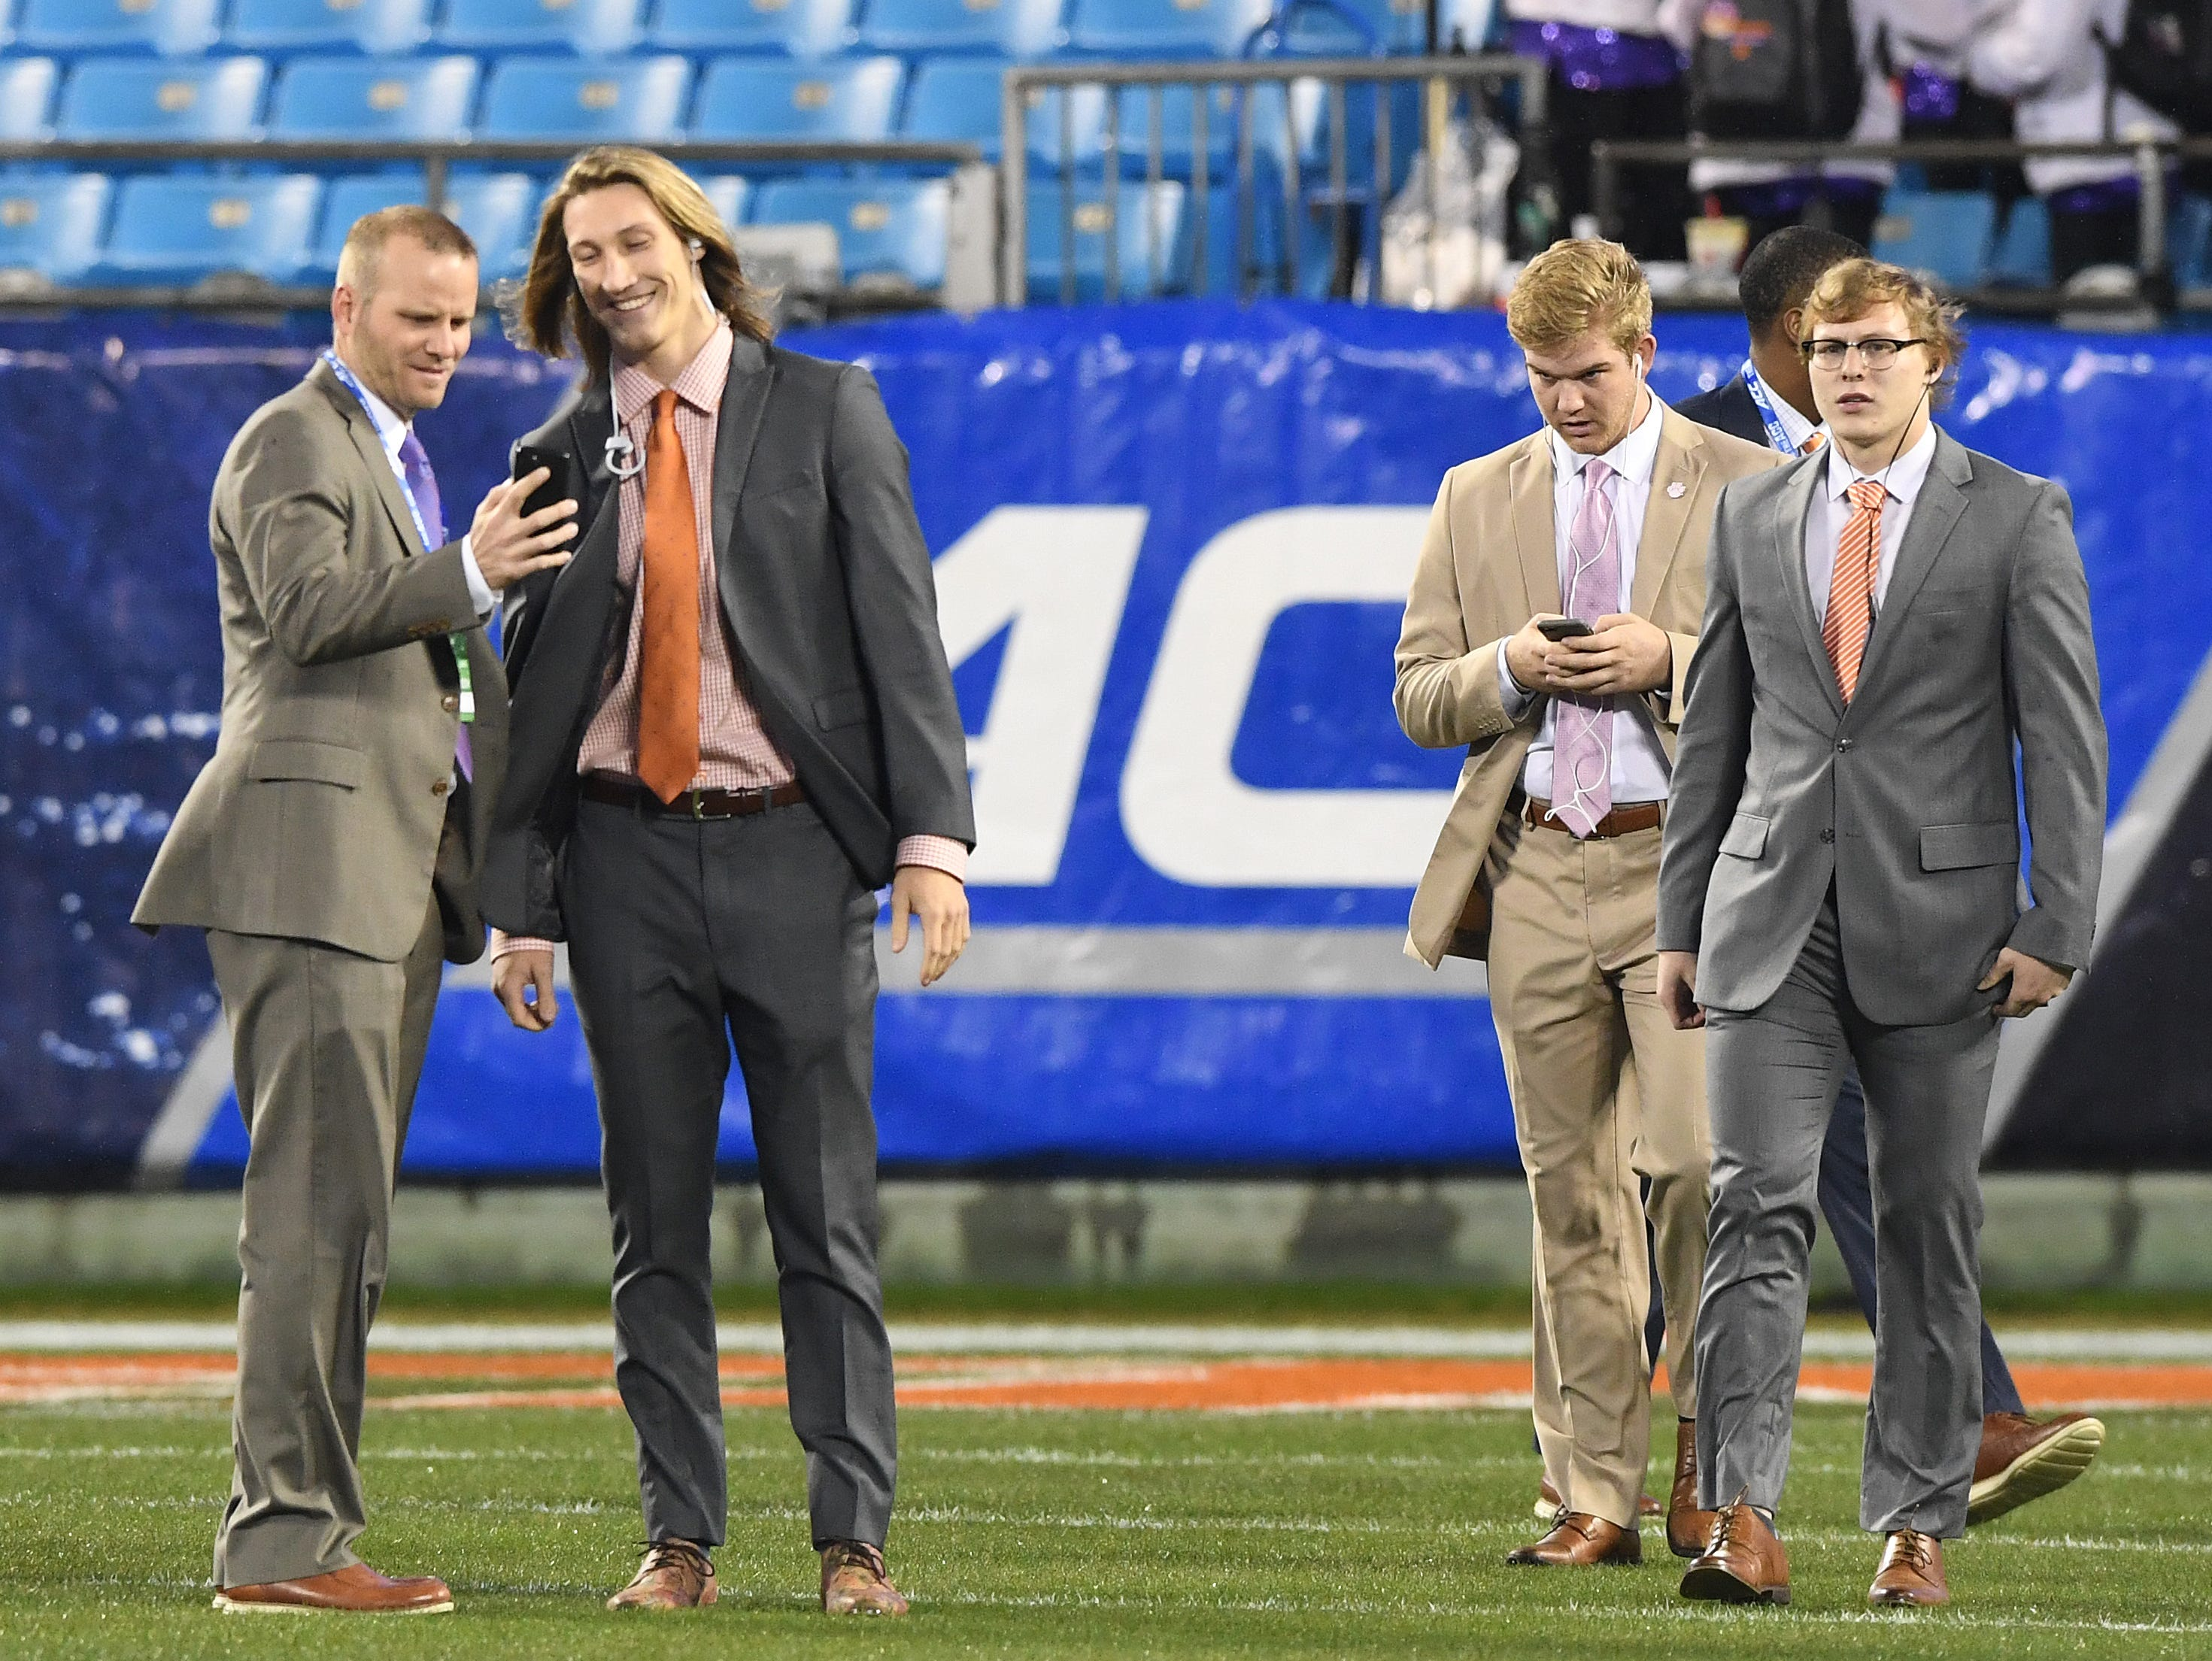 Clemson quarterback Trevor Lawrence and quarterbacks coach Brandon Streeter on the field after arriving at Bank of America Stadium in Charlotte, N.C. for the Dr. Pepper ACC Championship Saturday, December 1, 2017.